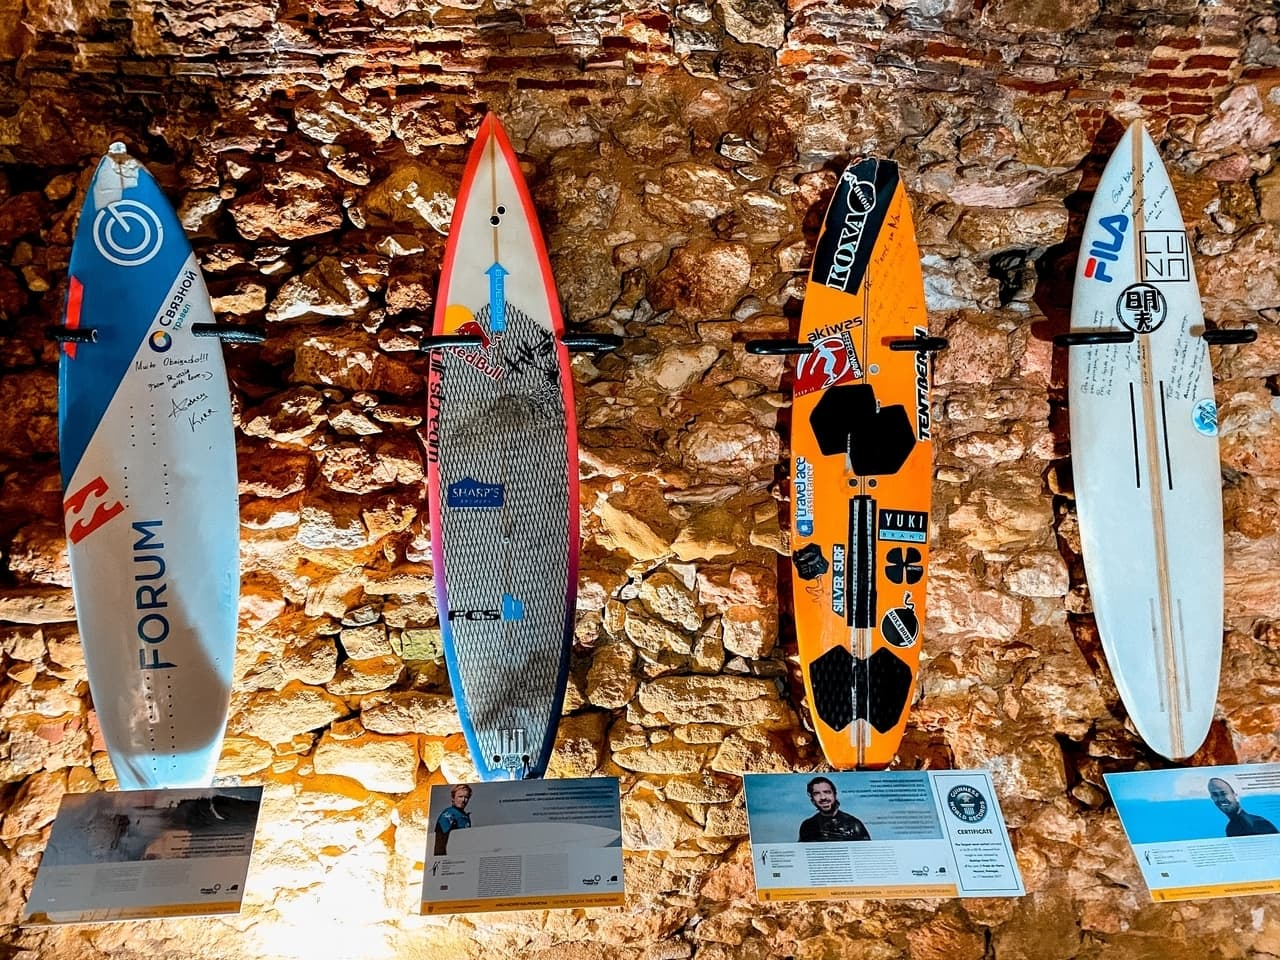 The suf museum documenting the Nazare giant waves and biggest wave ever surfed.